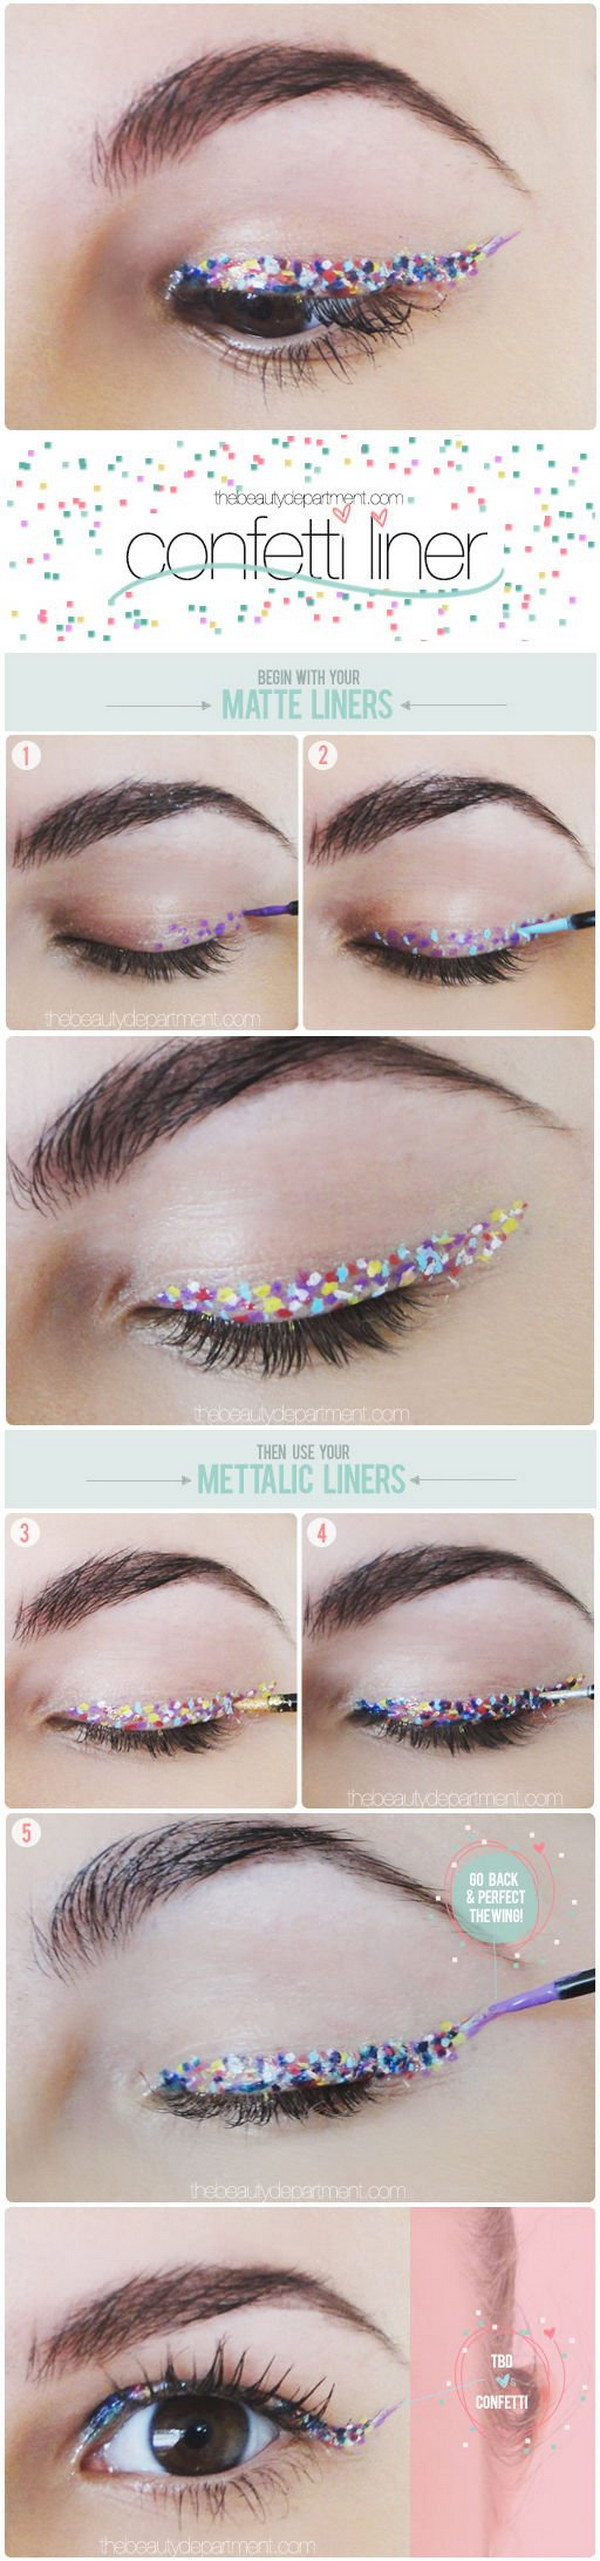 How to Get Confetti Eyeliner.